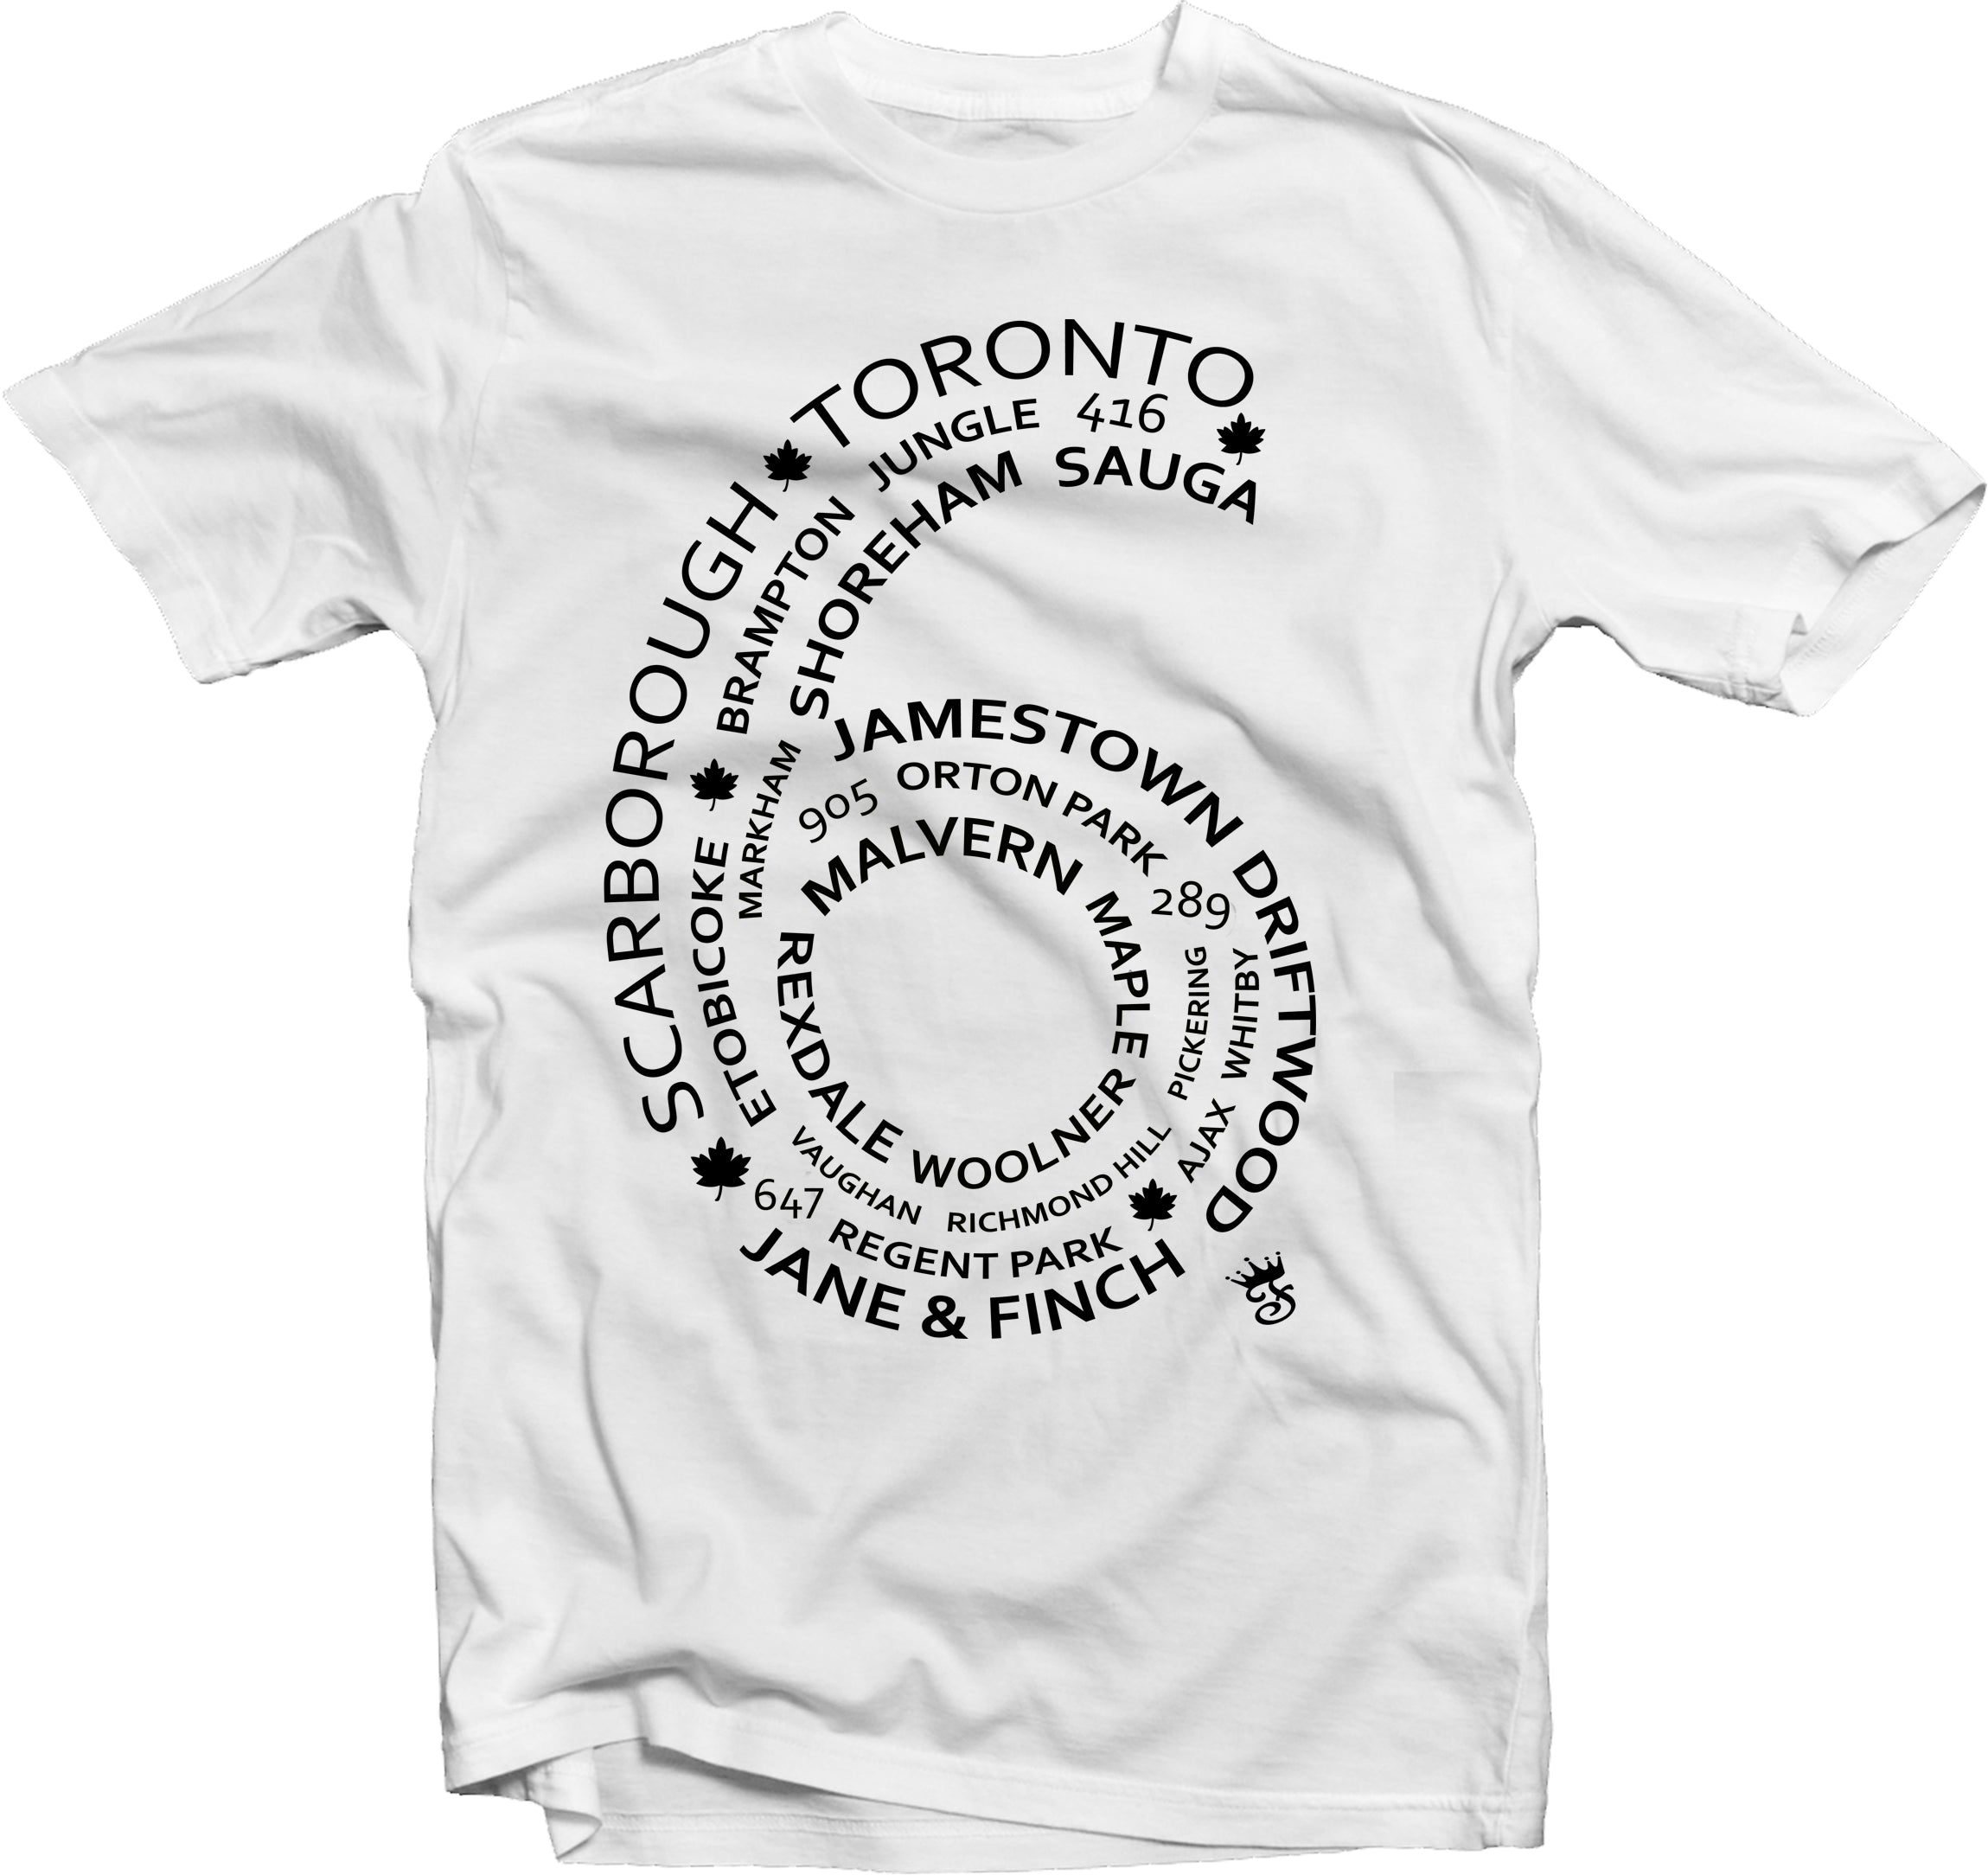 6 Side T shirt White streetwear - Famous Club Clothing - Famous Club Clothing